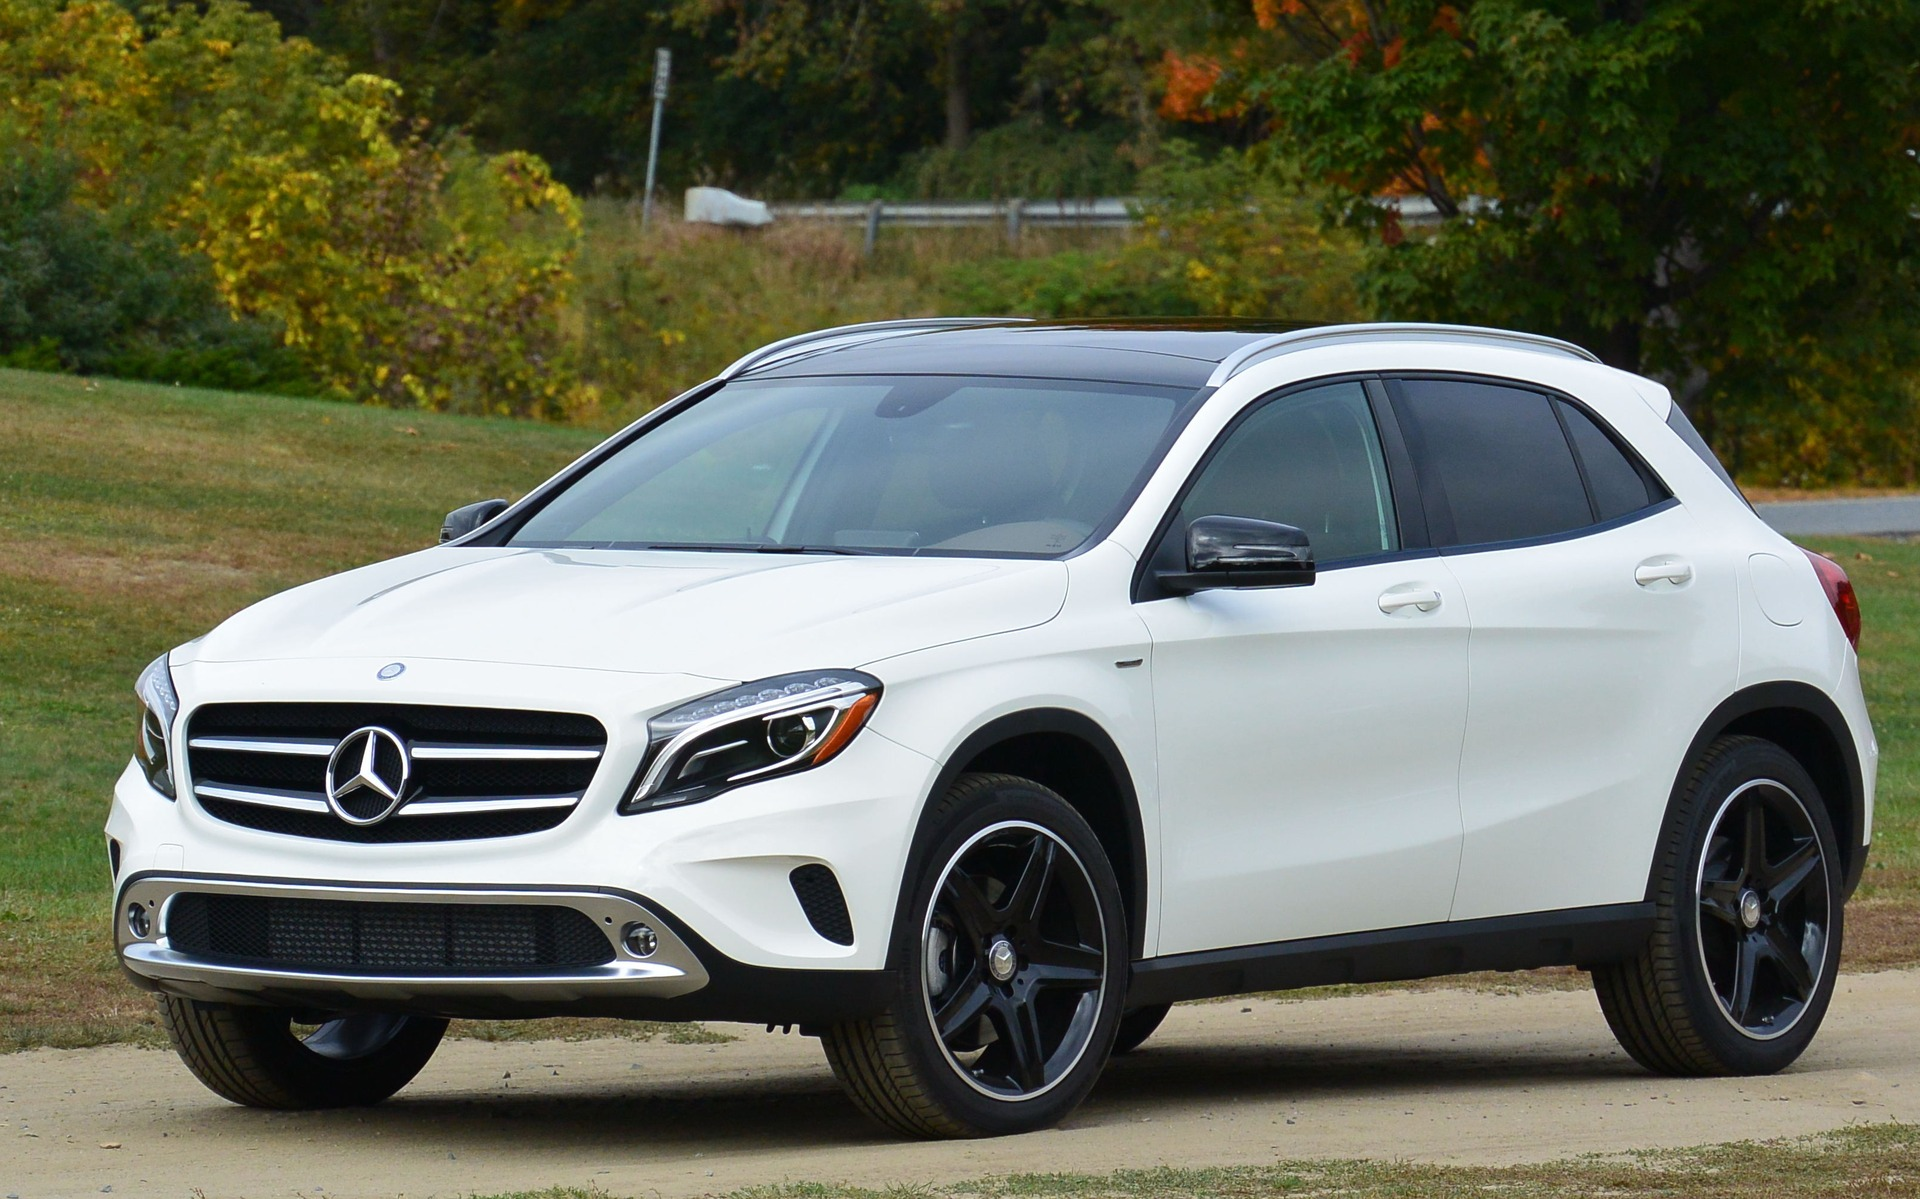 2015 mercedes benz gla practical or sporty review 2015 mercedes benz gla class the car guide. Black Bedroom Furniture Sets. Home Design Ideas